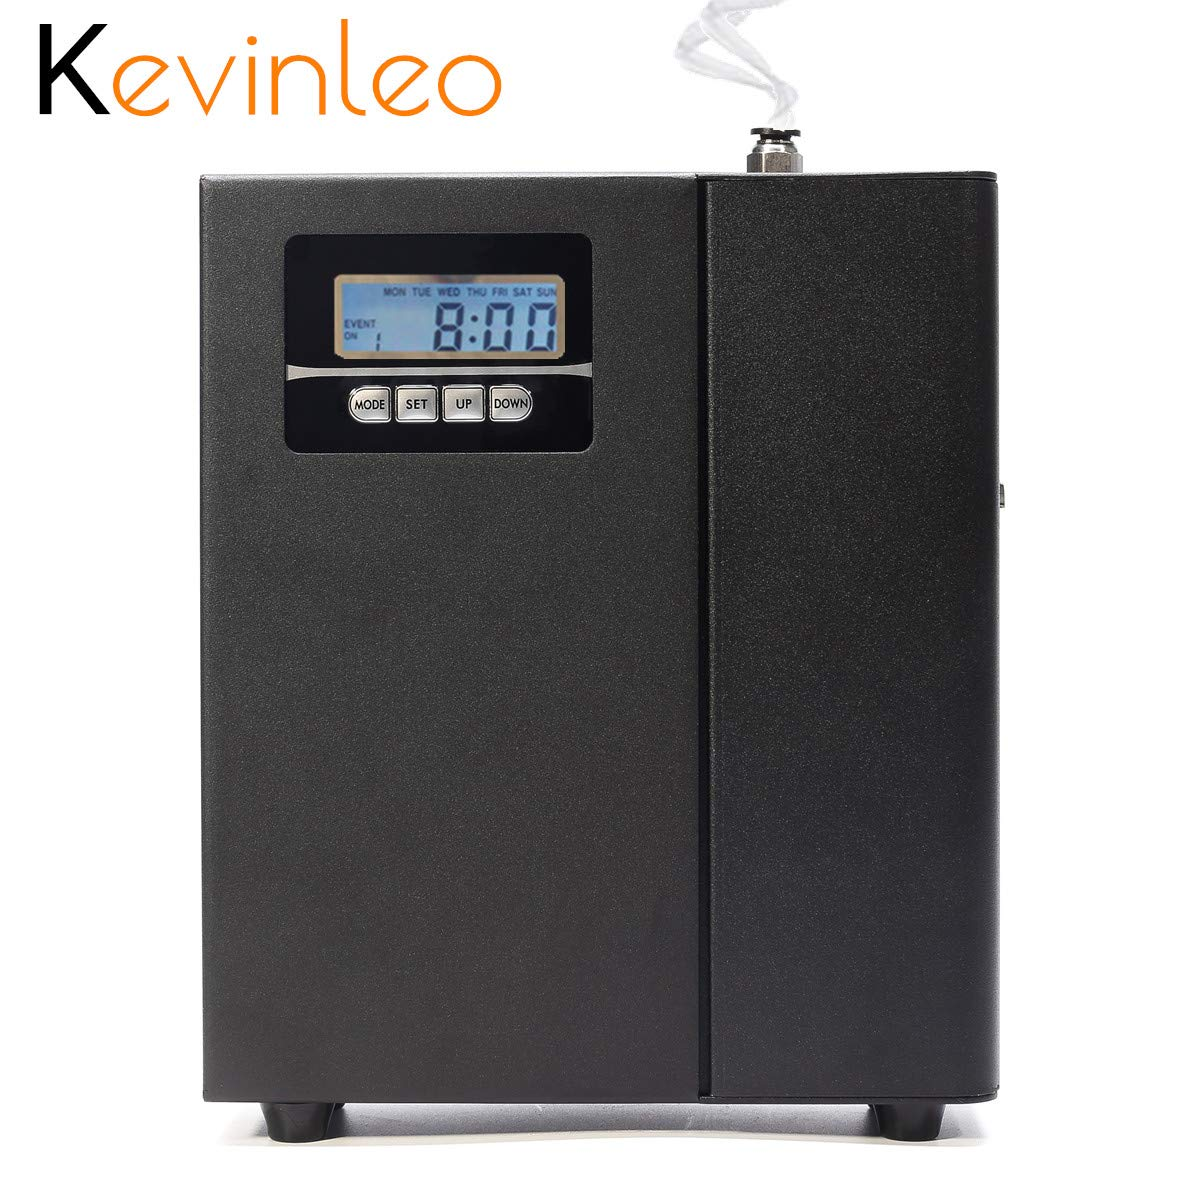 Kevinleo Air Scent Machine Cover 860-1,100+sq.ft,HVAC System,Can Set Work Time(Monday-Sunday),Video Handbook,Waterless,Fragrances Essential Oil,Home Scent System,Commercial Diffuser for Hotel,SPA KTV